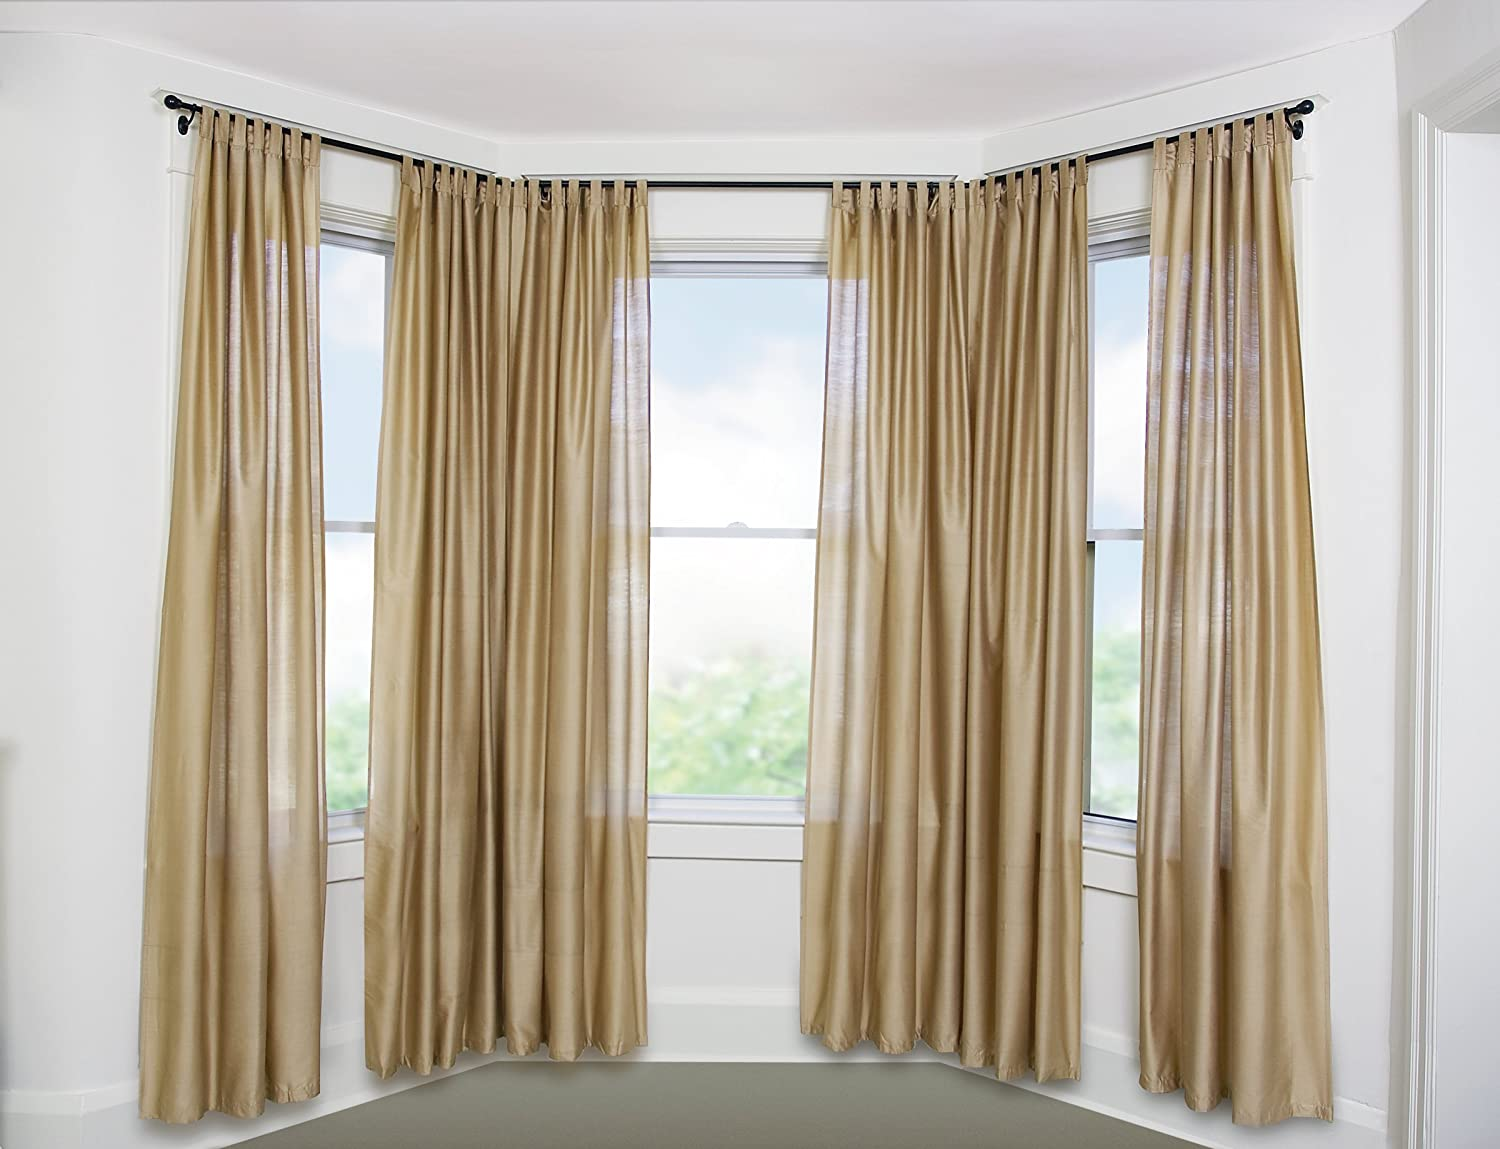 Bay windows and corner curtain rods apps directories - Amazon Com Umbra Bayview Drapery Rod System For Bay Windows Bronze Home Kitchen